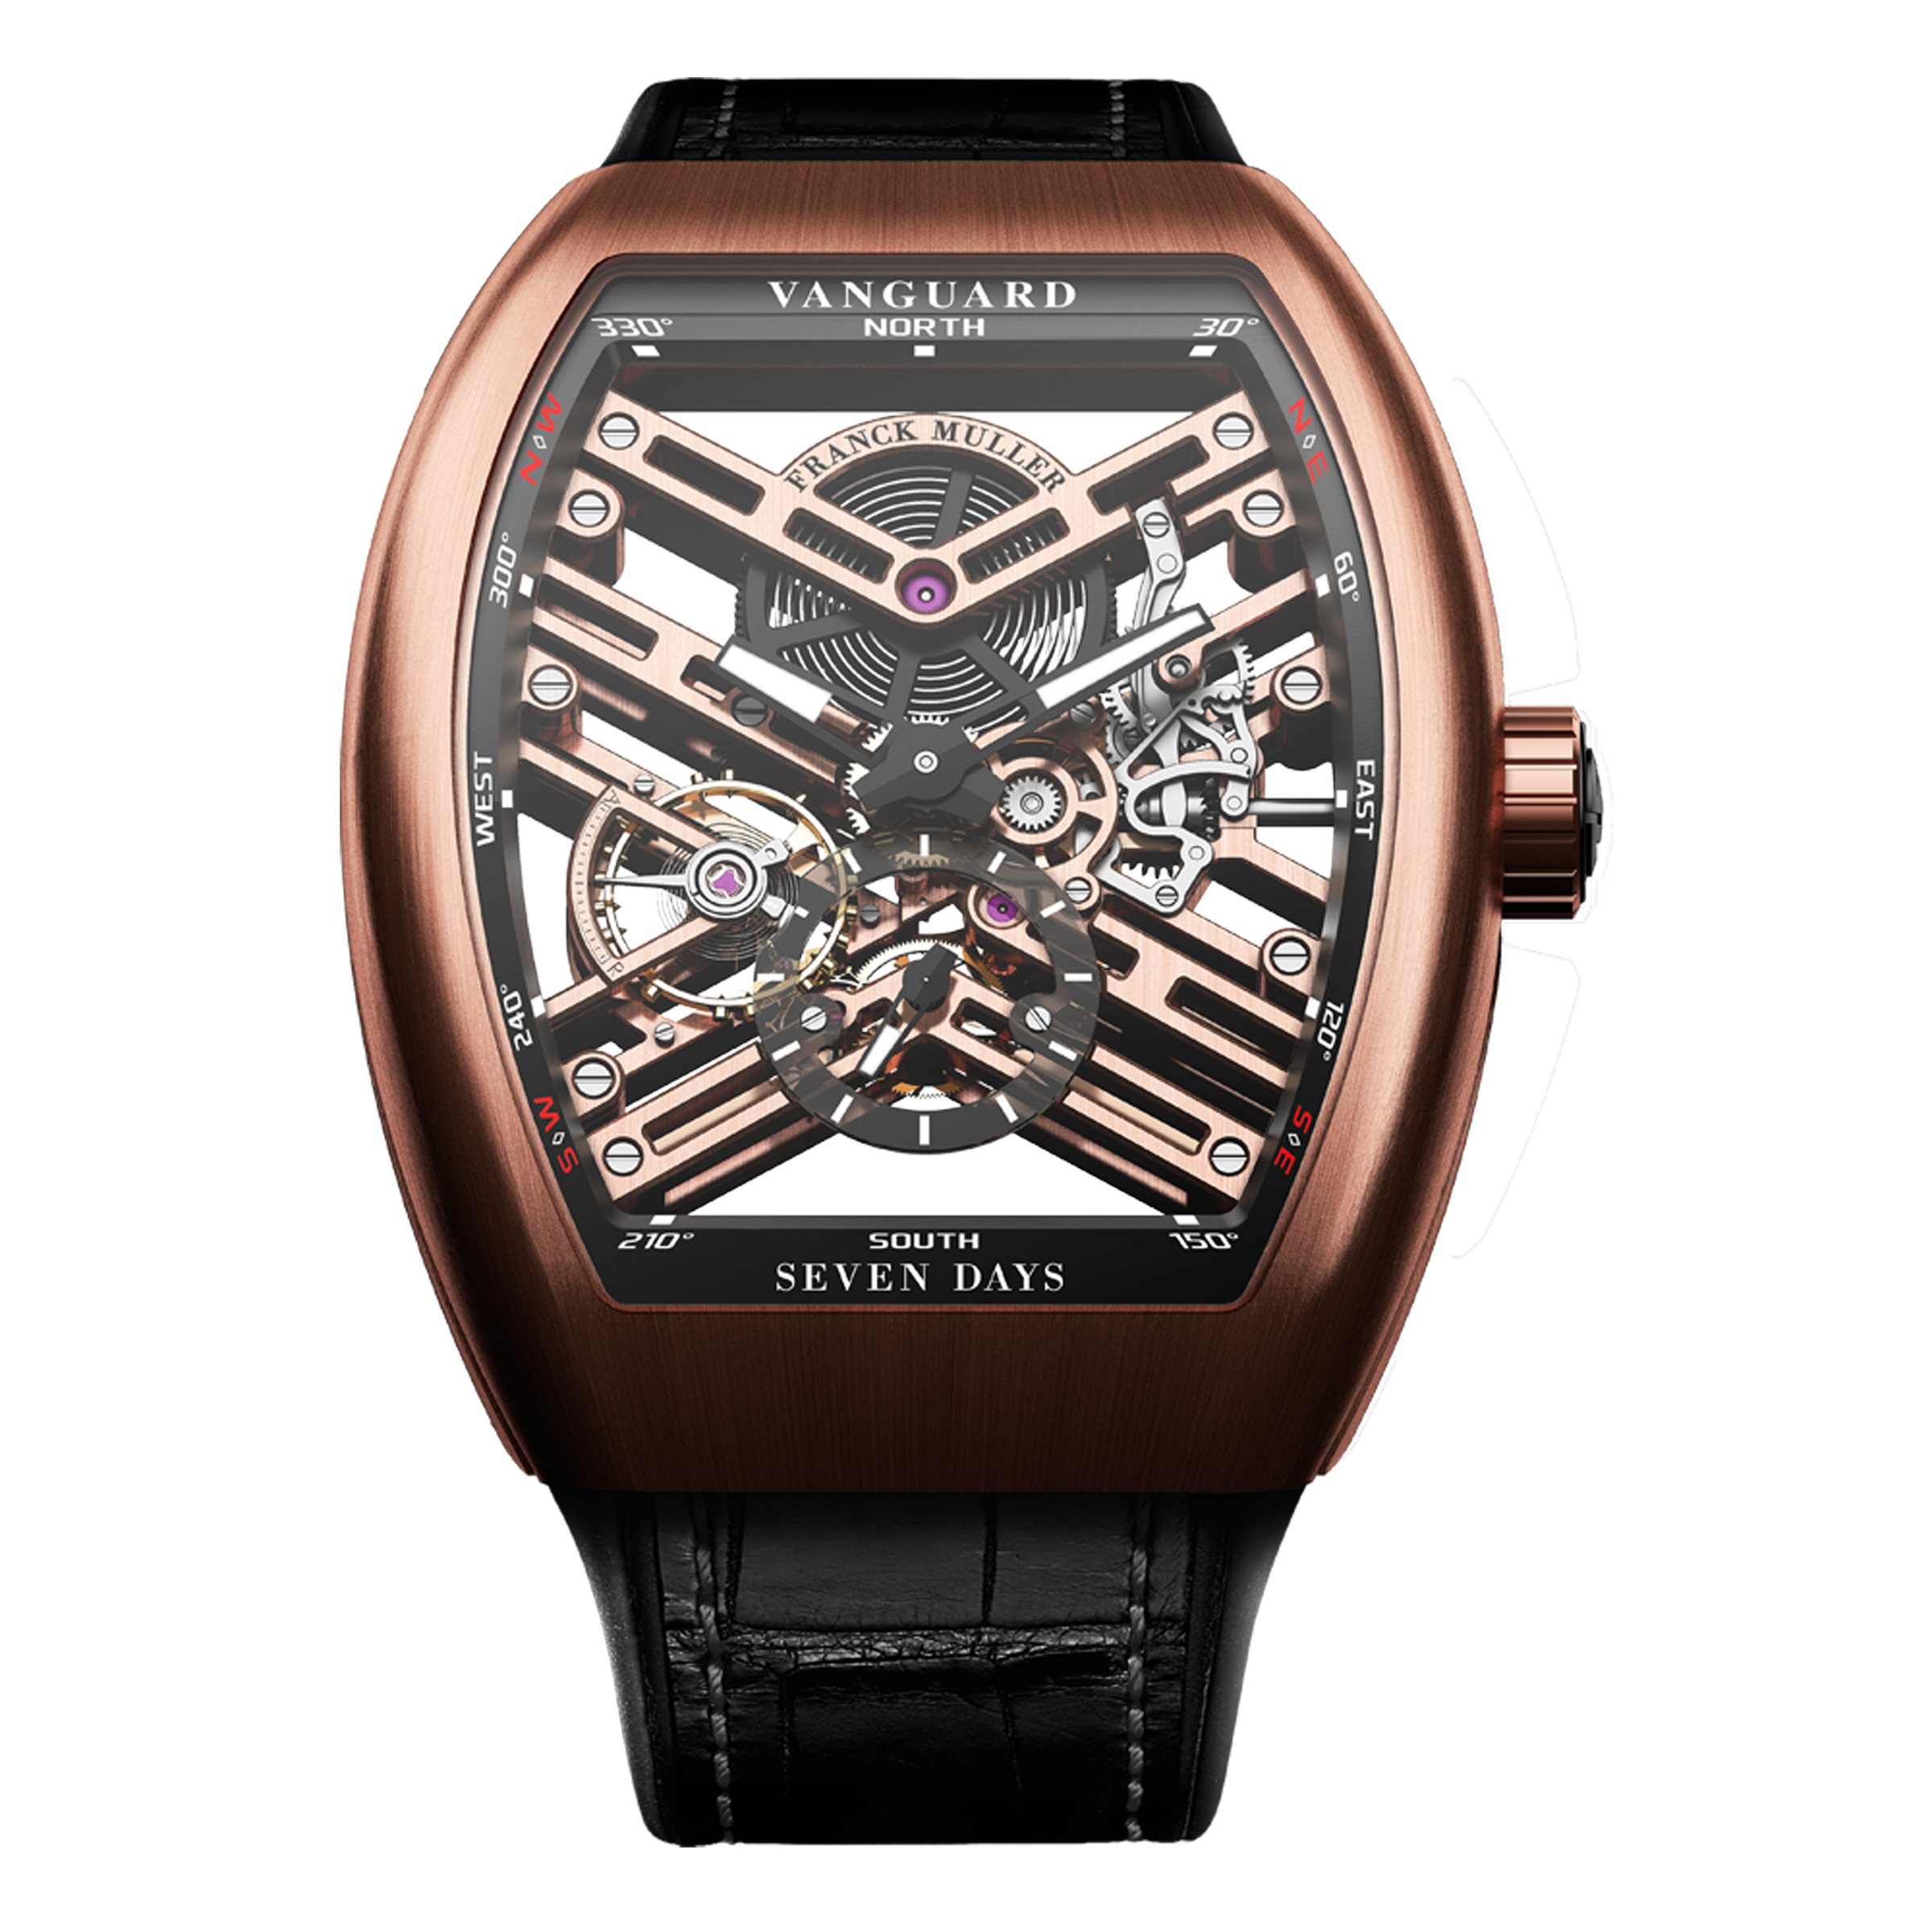 Franck Muller Vanguard Skeleton